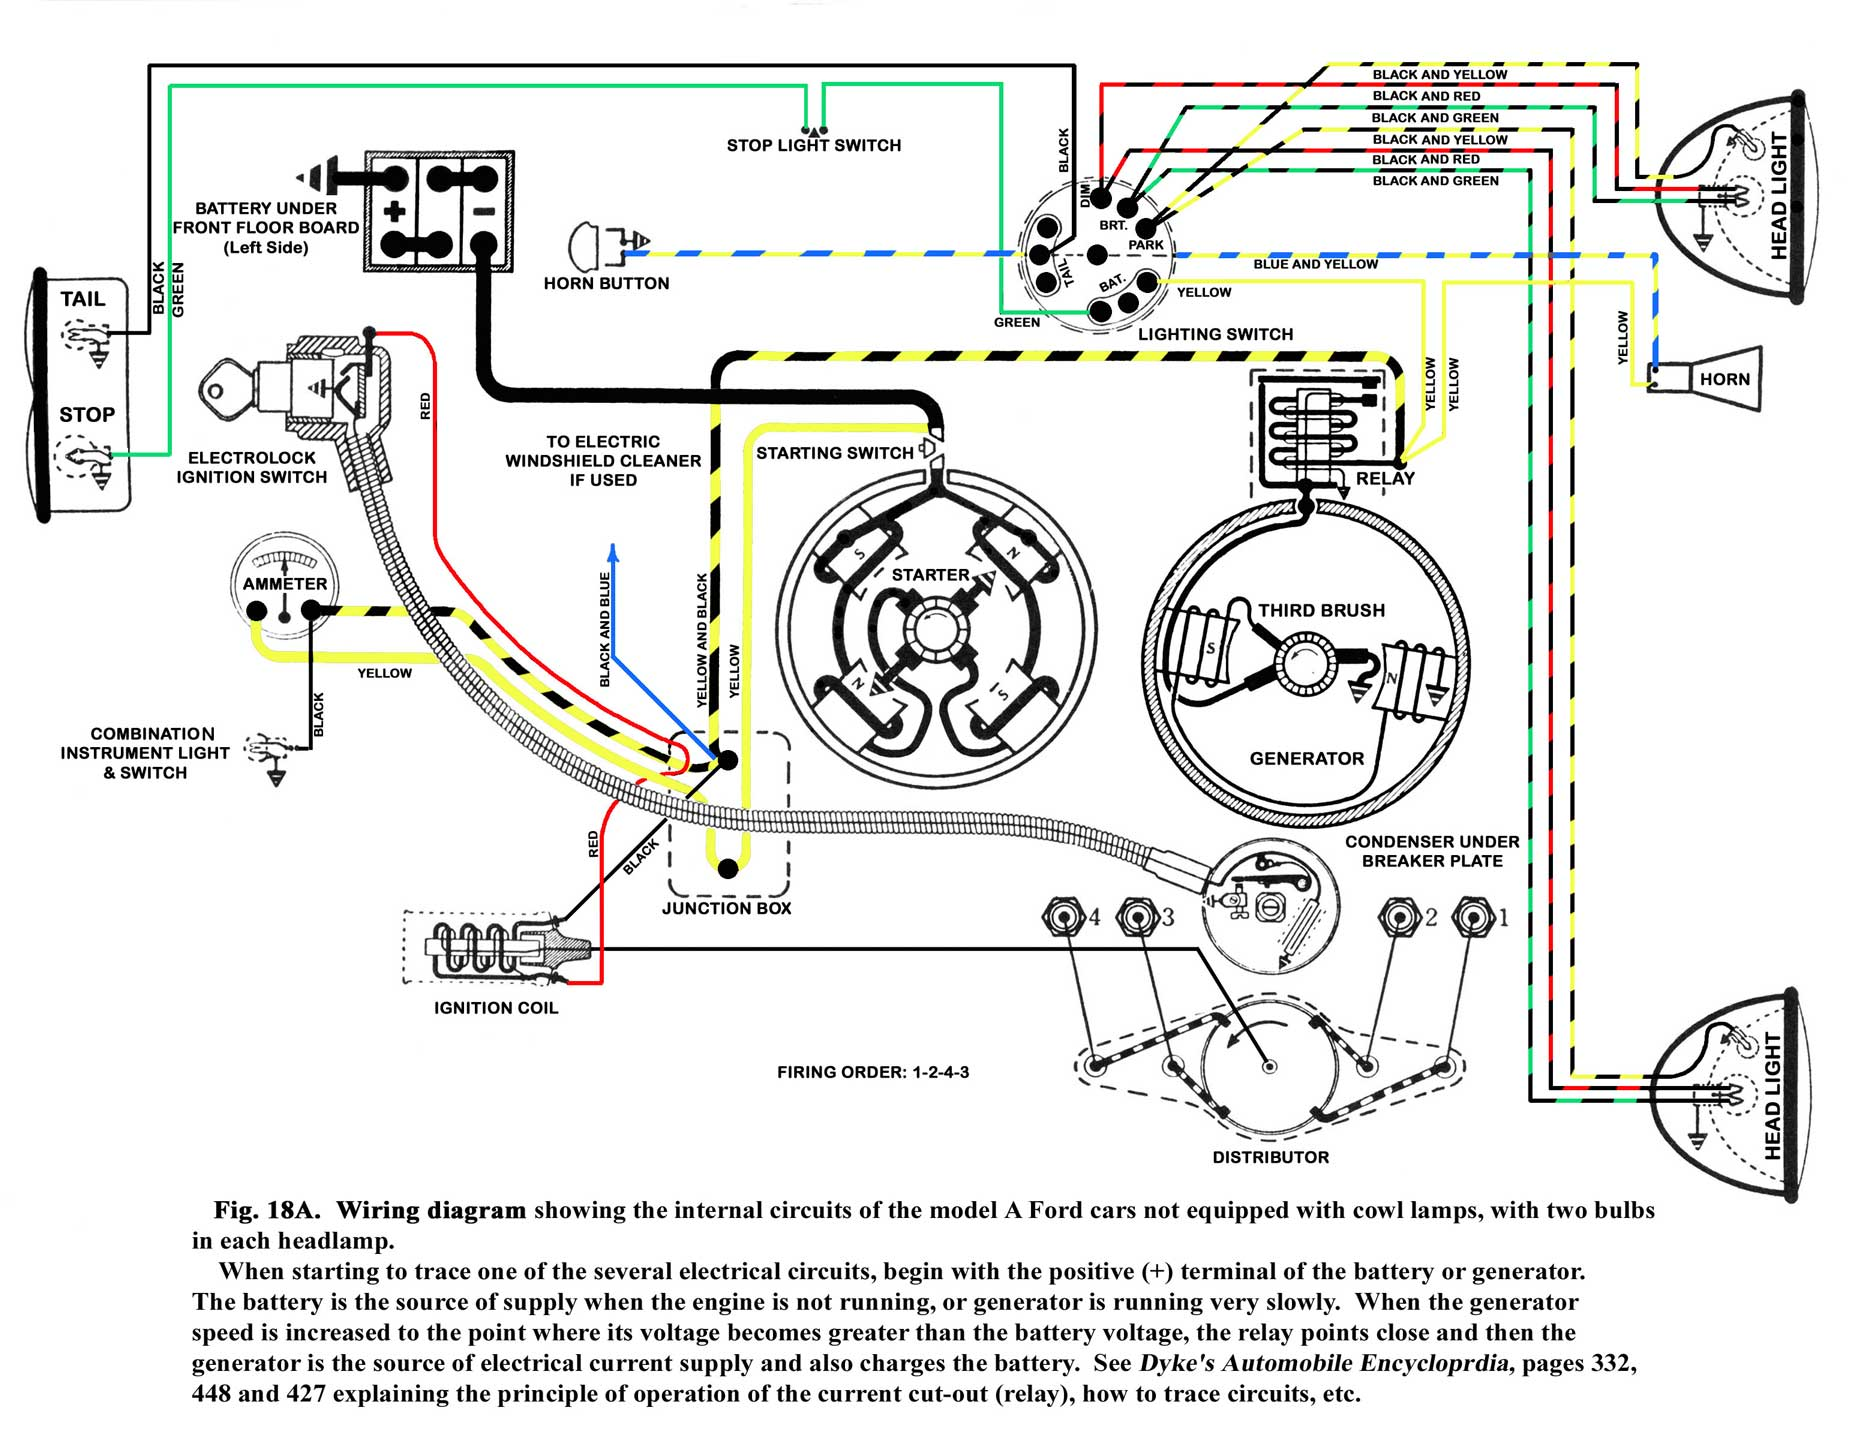 M416 Wiring Diagram Offroad Trailer Build From Bantam M Military Light Ford Generator Auto Database Index Of John Gloriabrady On